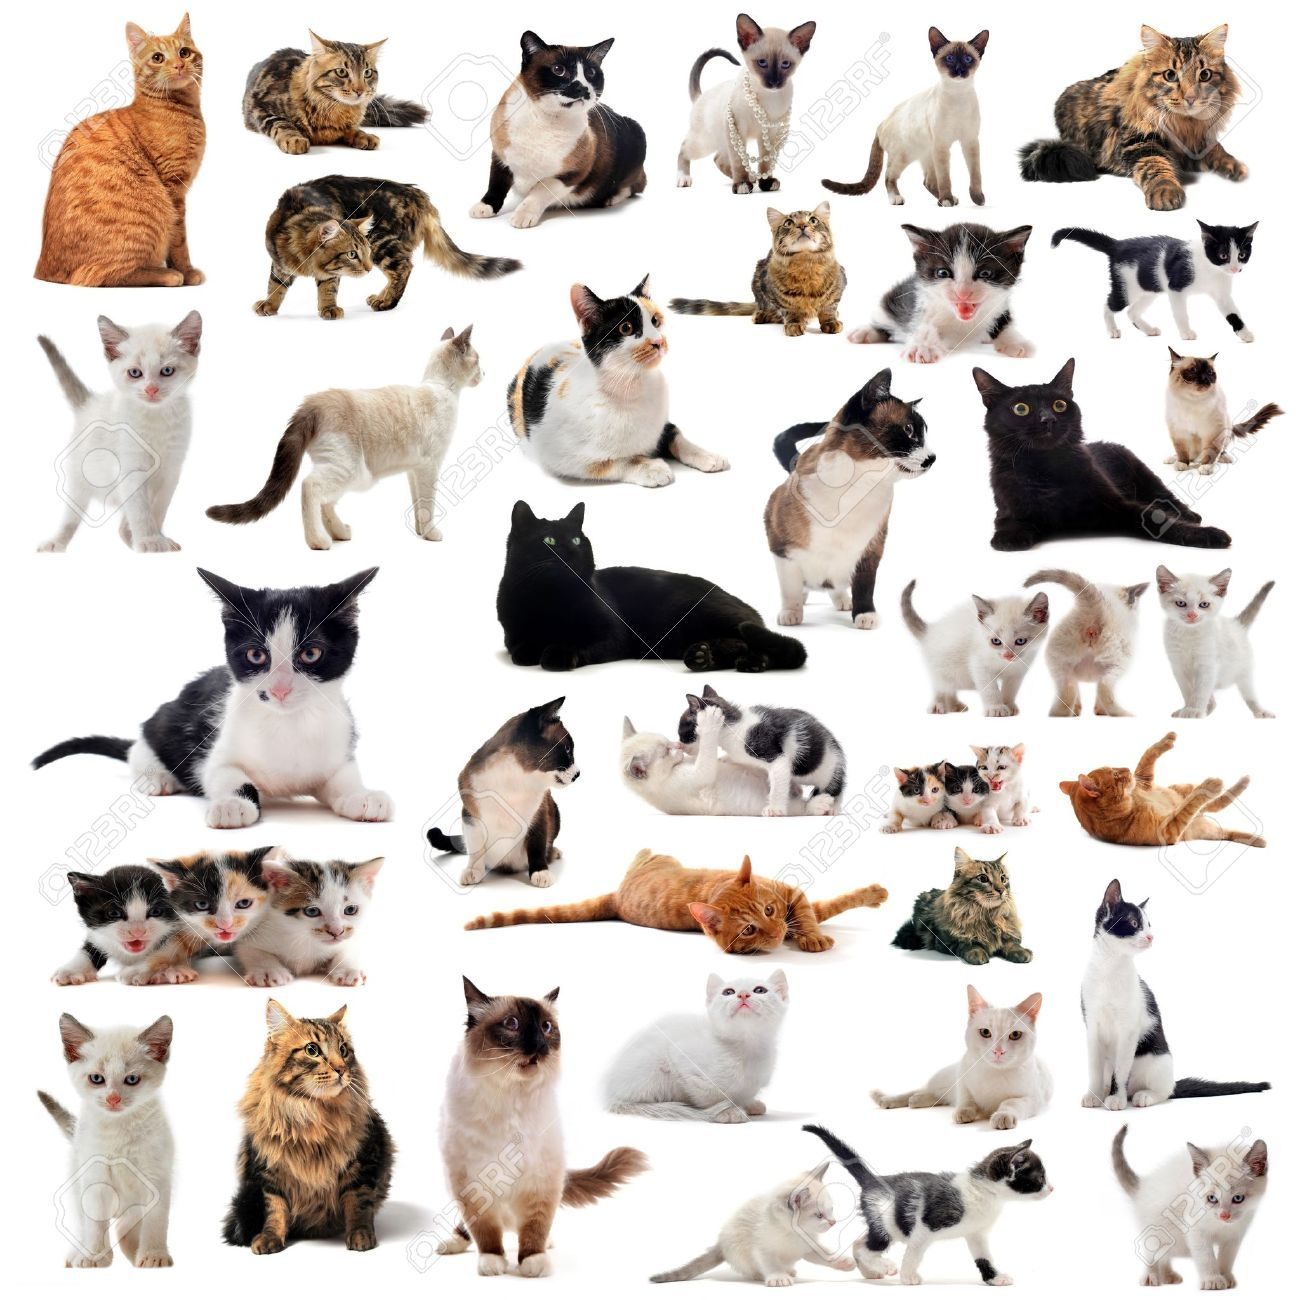 Cats And Kitten On A White Background Grey Cat Breeds Cats And